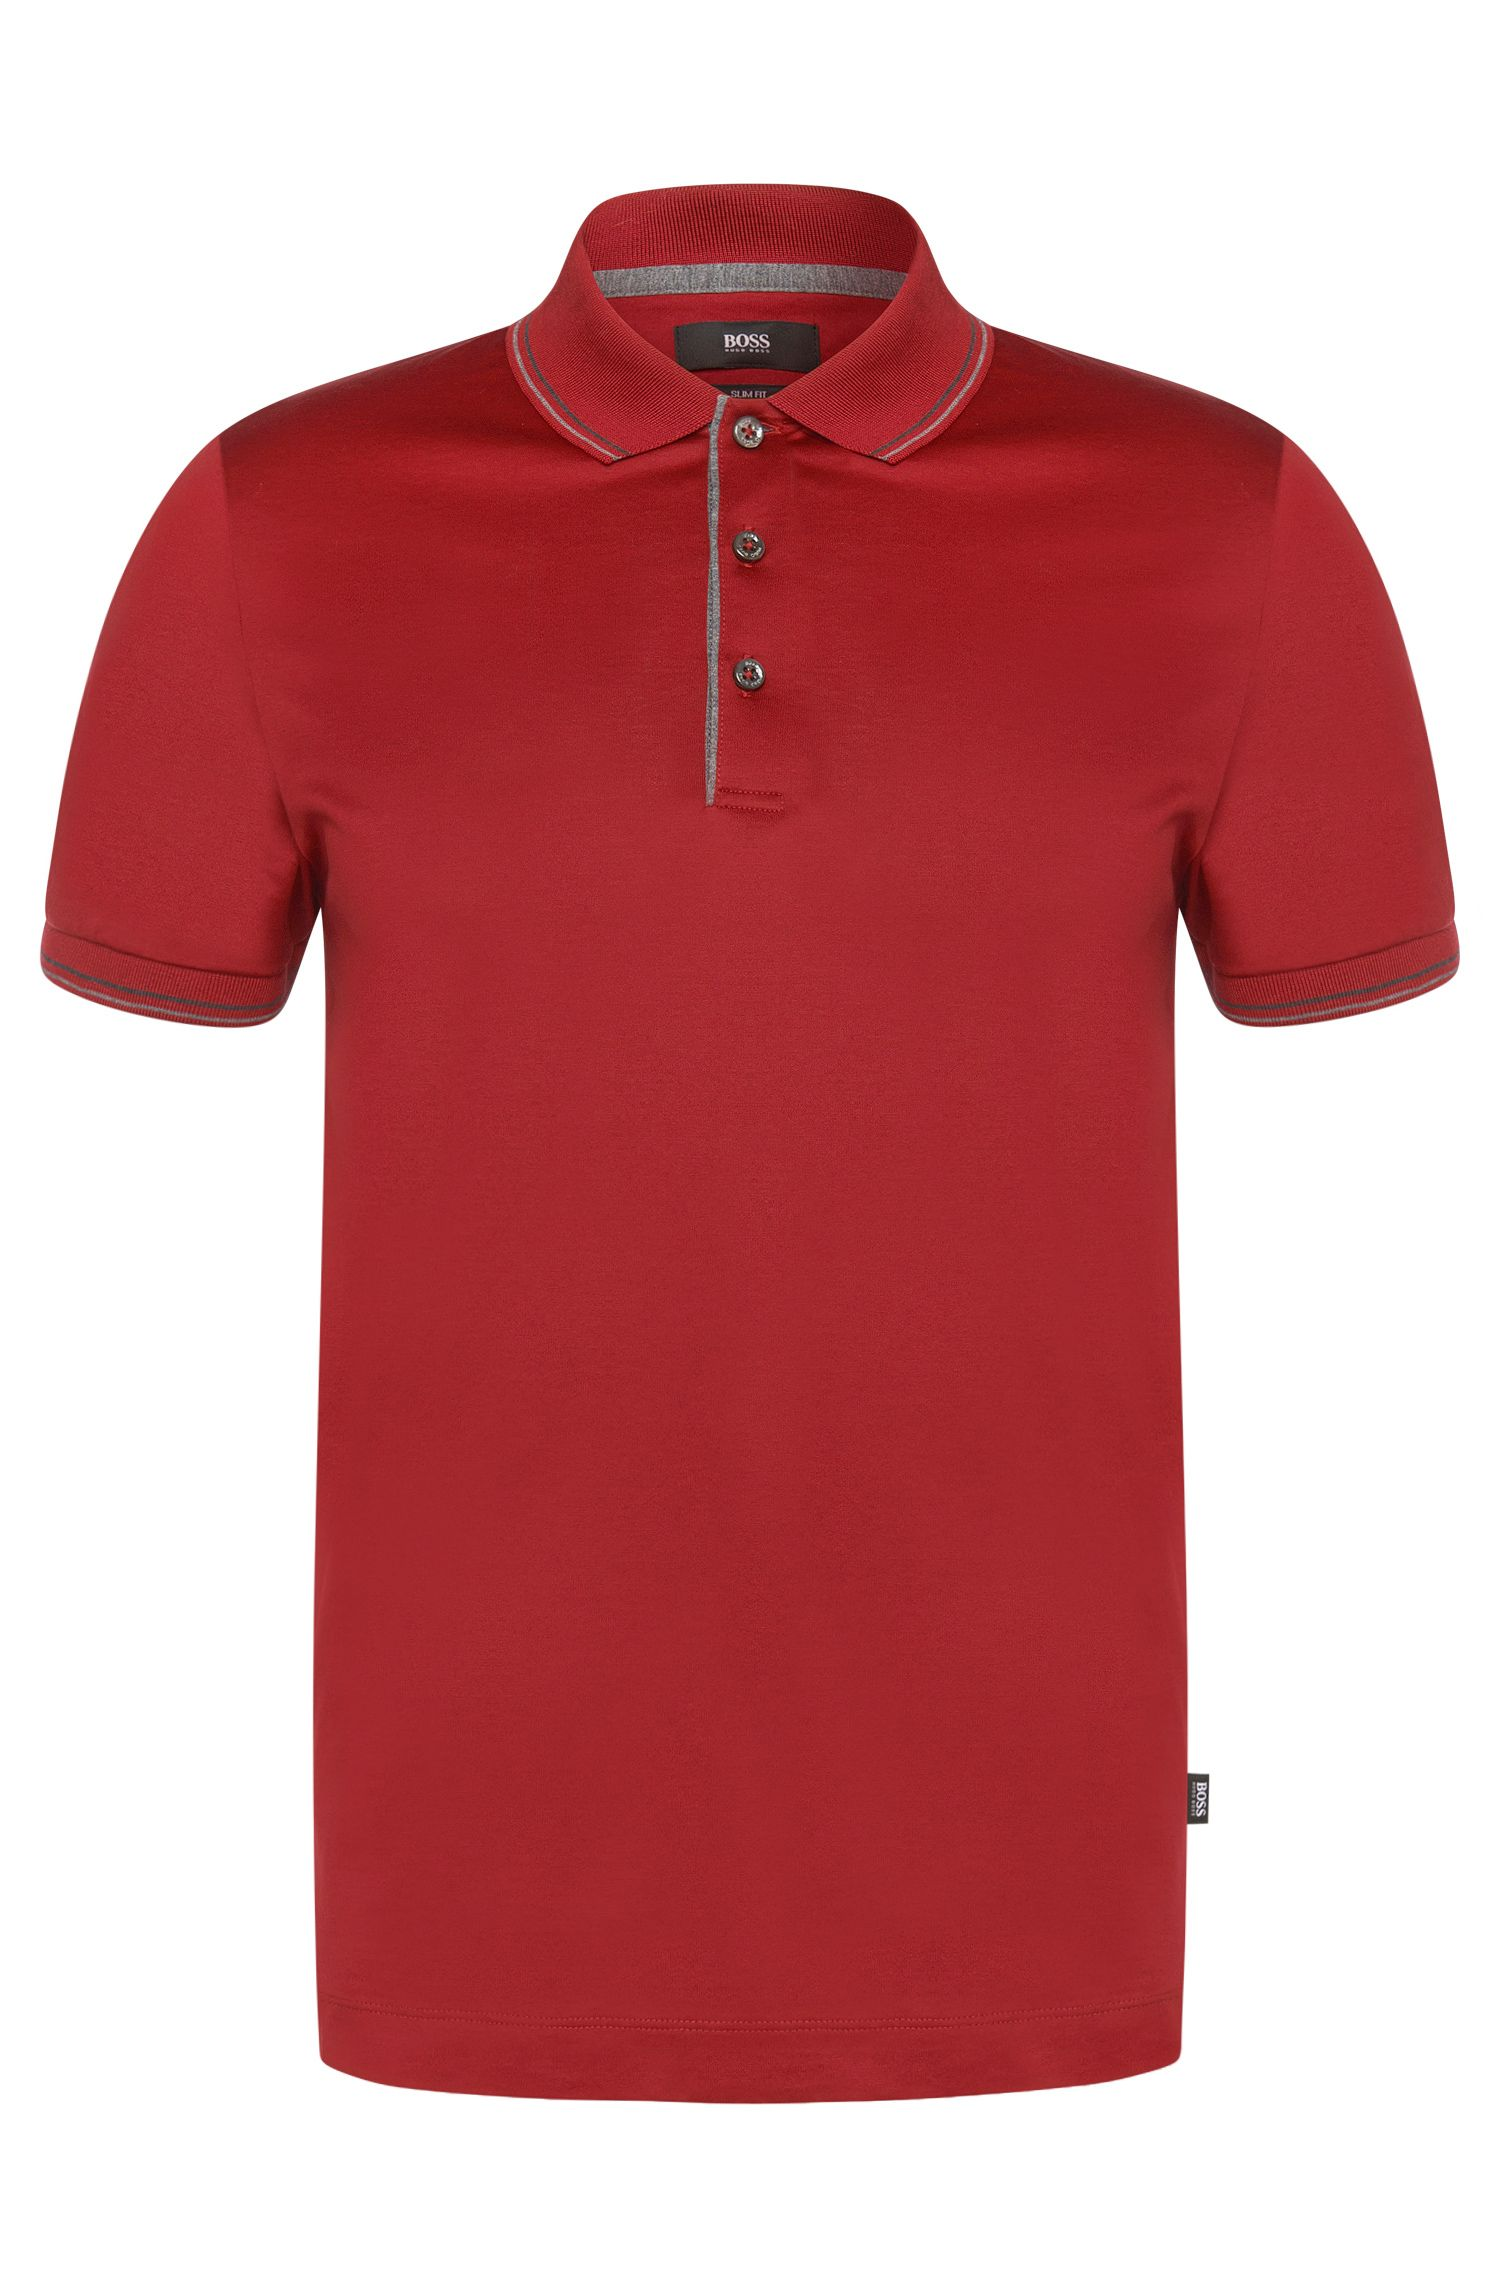 Slim-Fit Poloshirt aus Baumwolle: 'Phillipson 05'